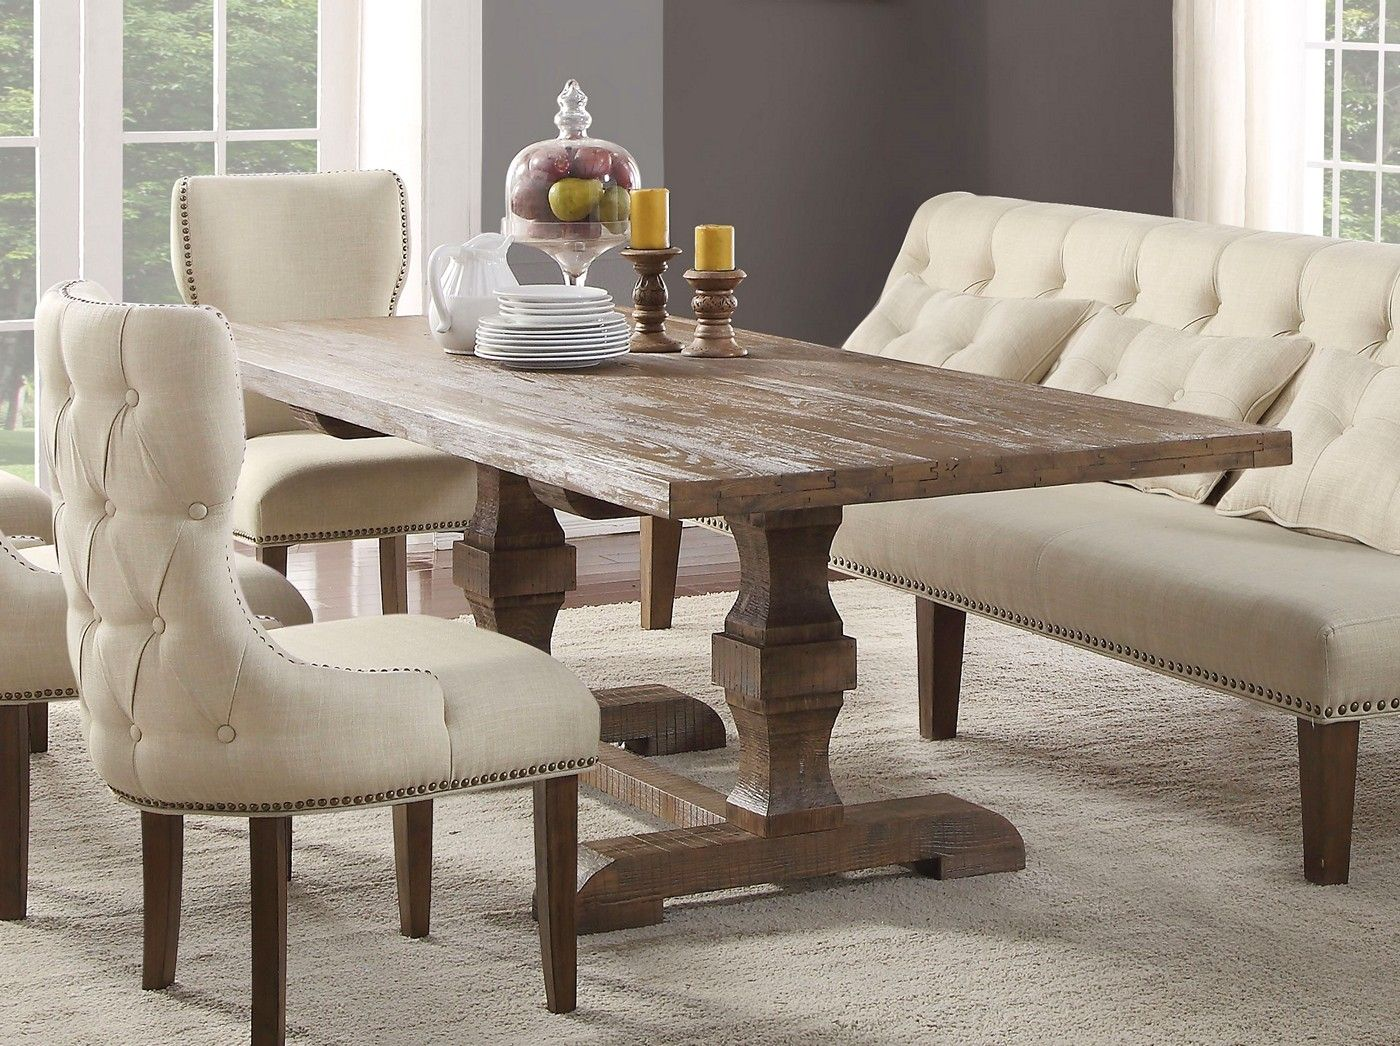 Aviemore Rustic 5 Pc 96 Quot Dining Table Set In Reclaimed Oak